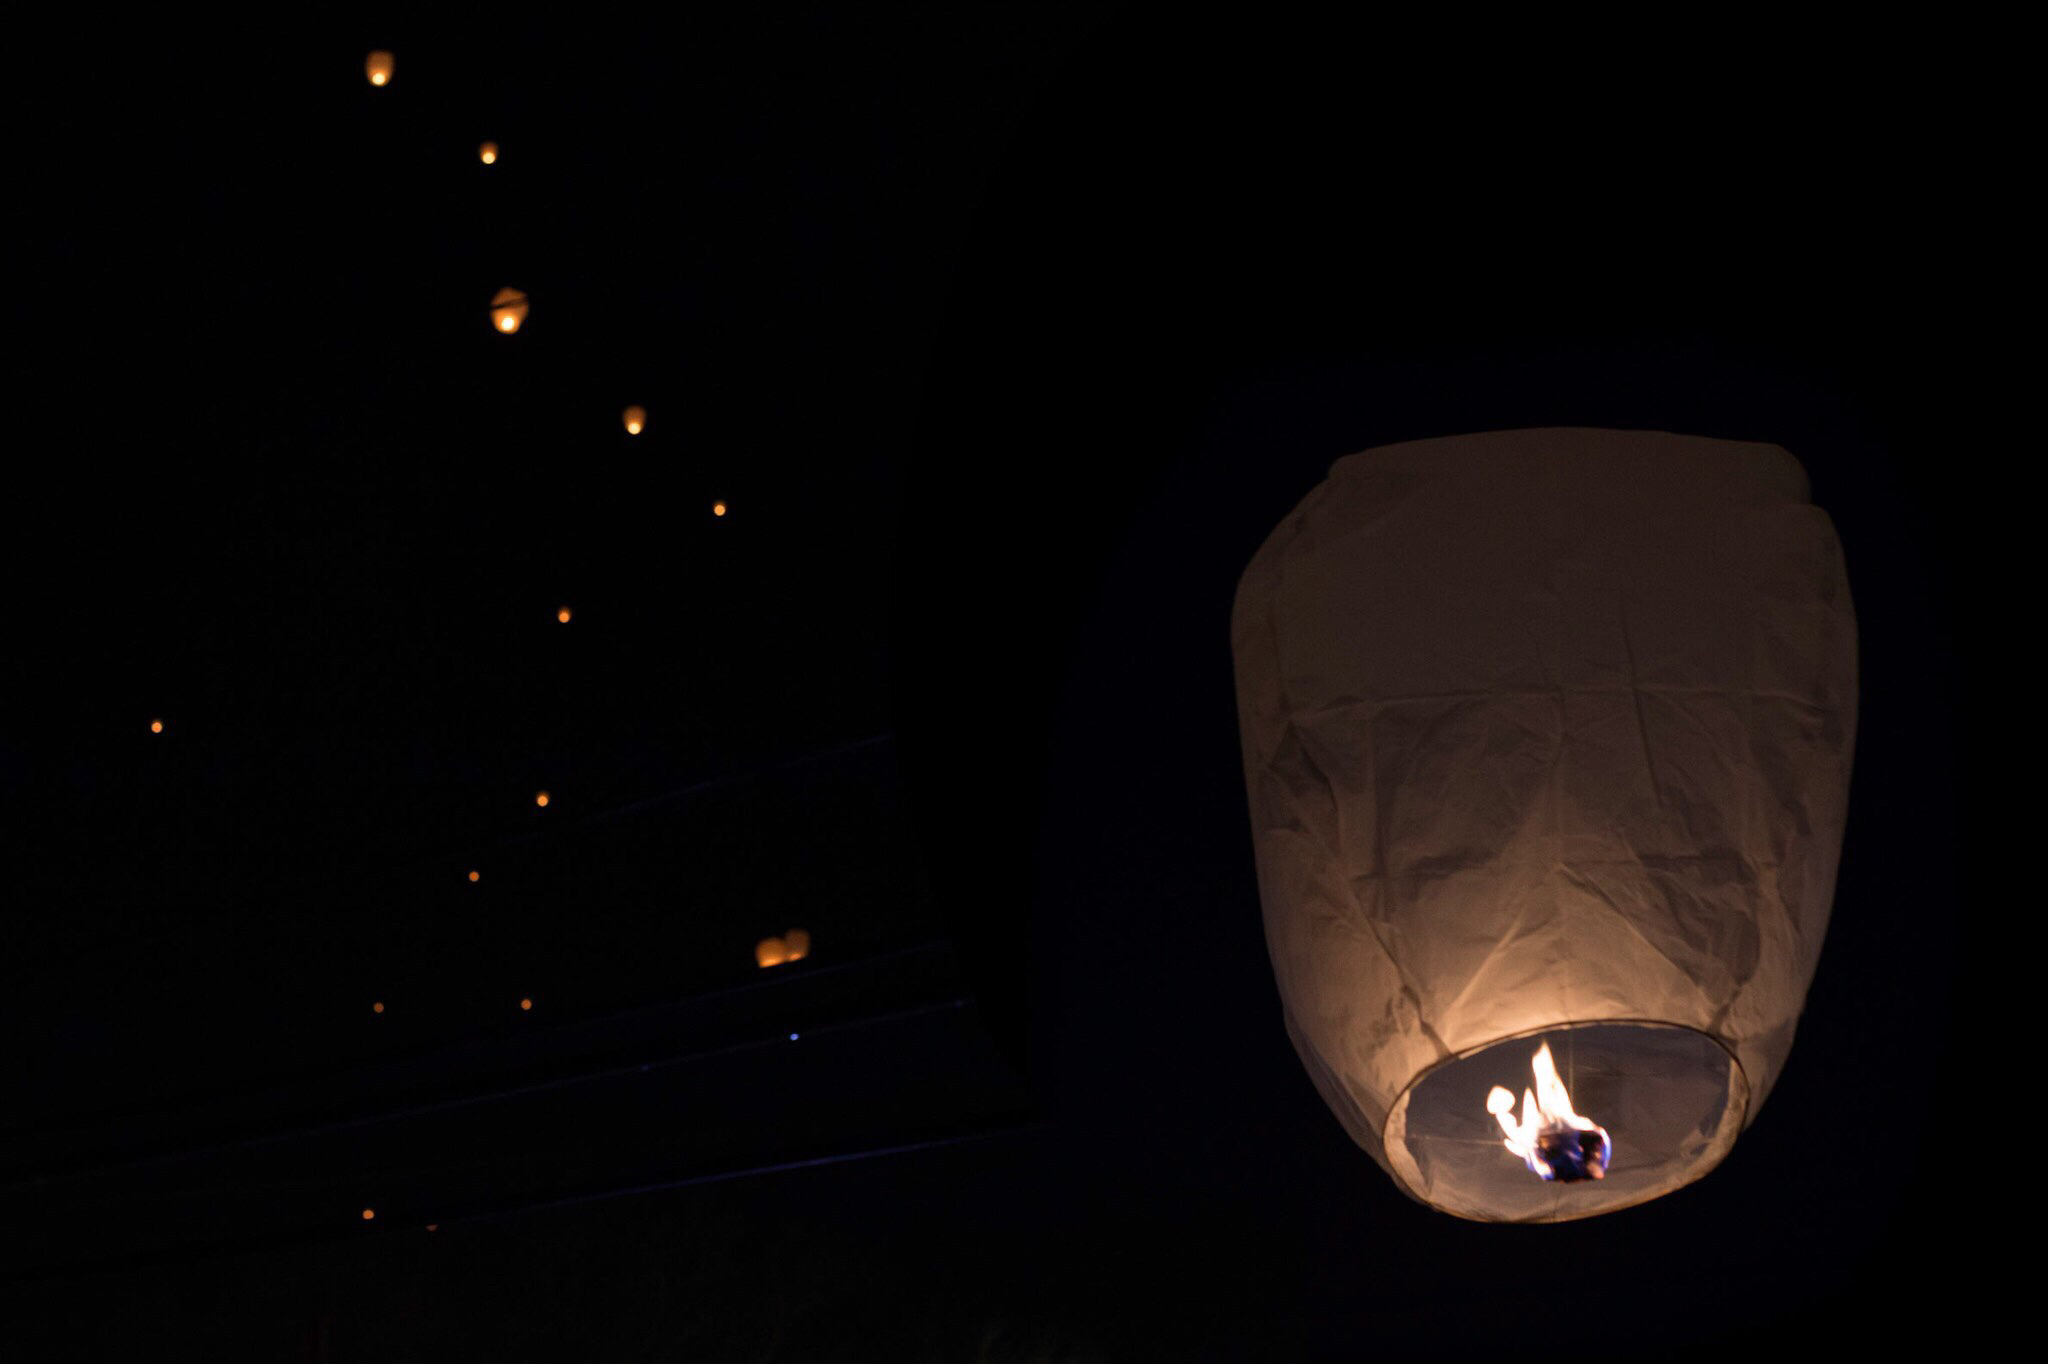 Paper lanterns lit up the sky in honor of Trayvon Martin.